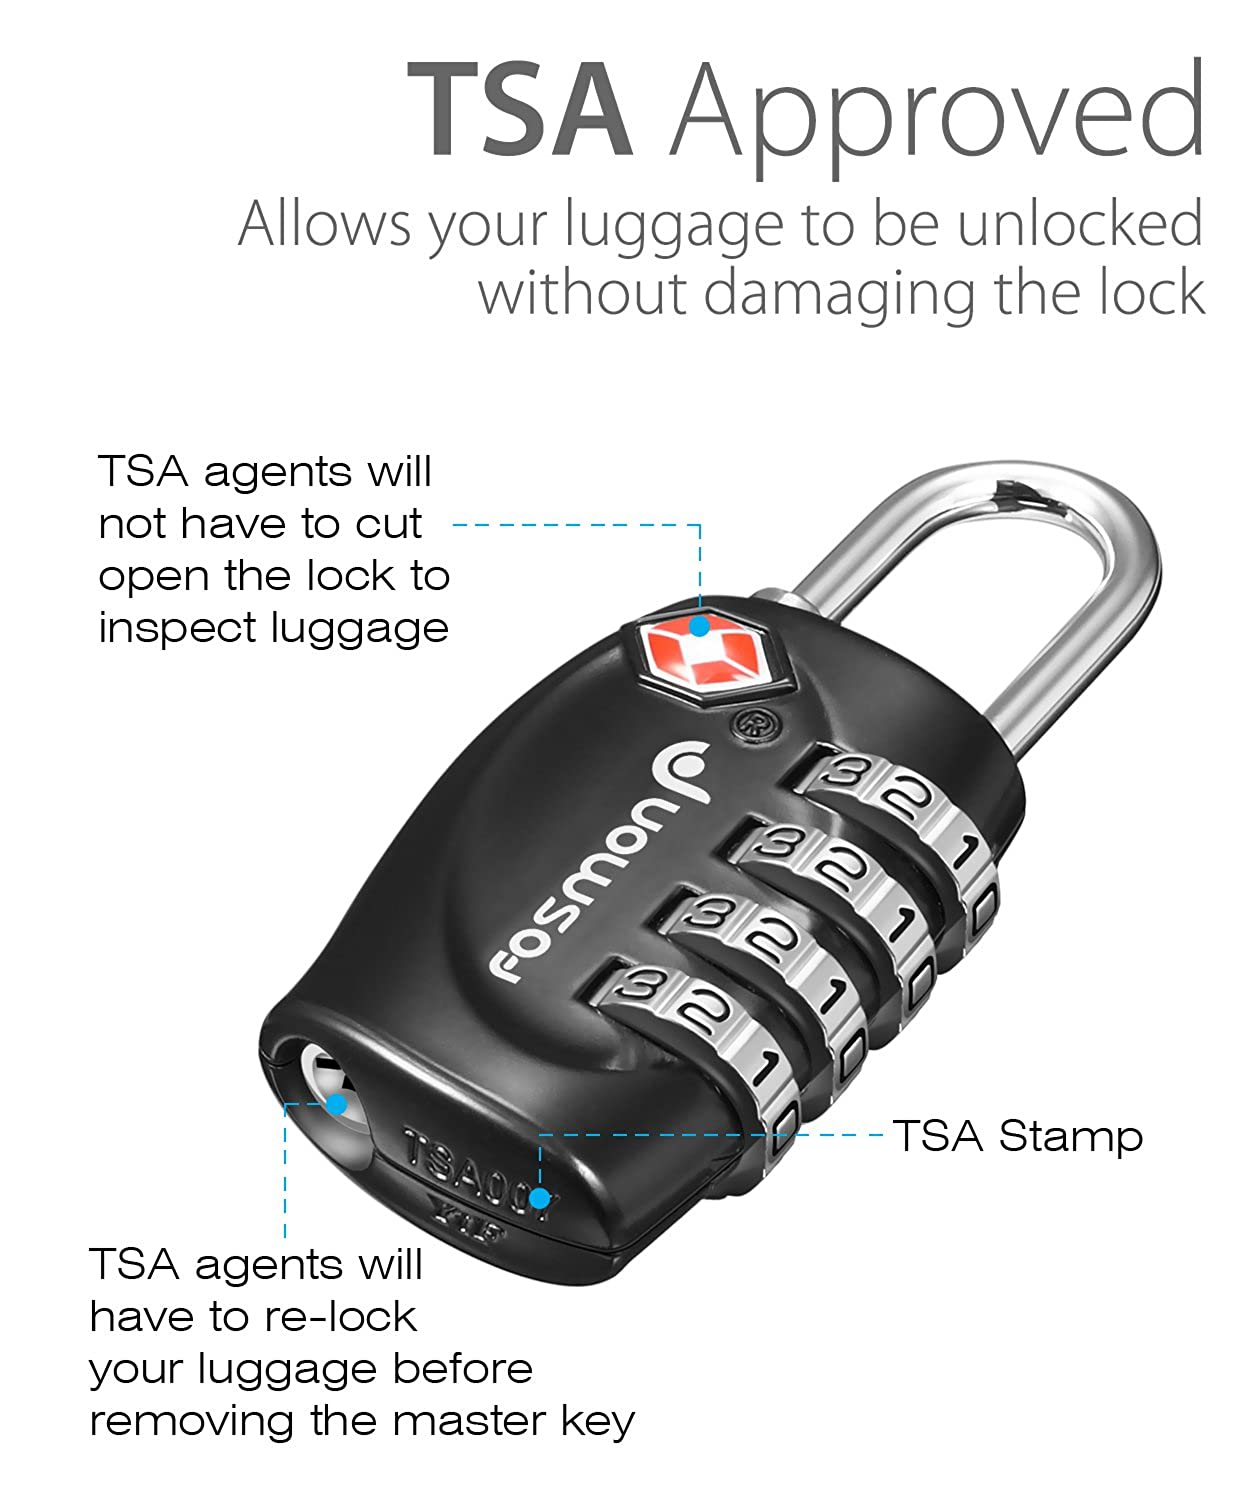 3752274d5a0e Fosmon 4 Digit TSA Approved Luggage locks for Suitcases & Baggage 1,2,3,4  Pack - Black